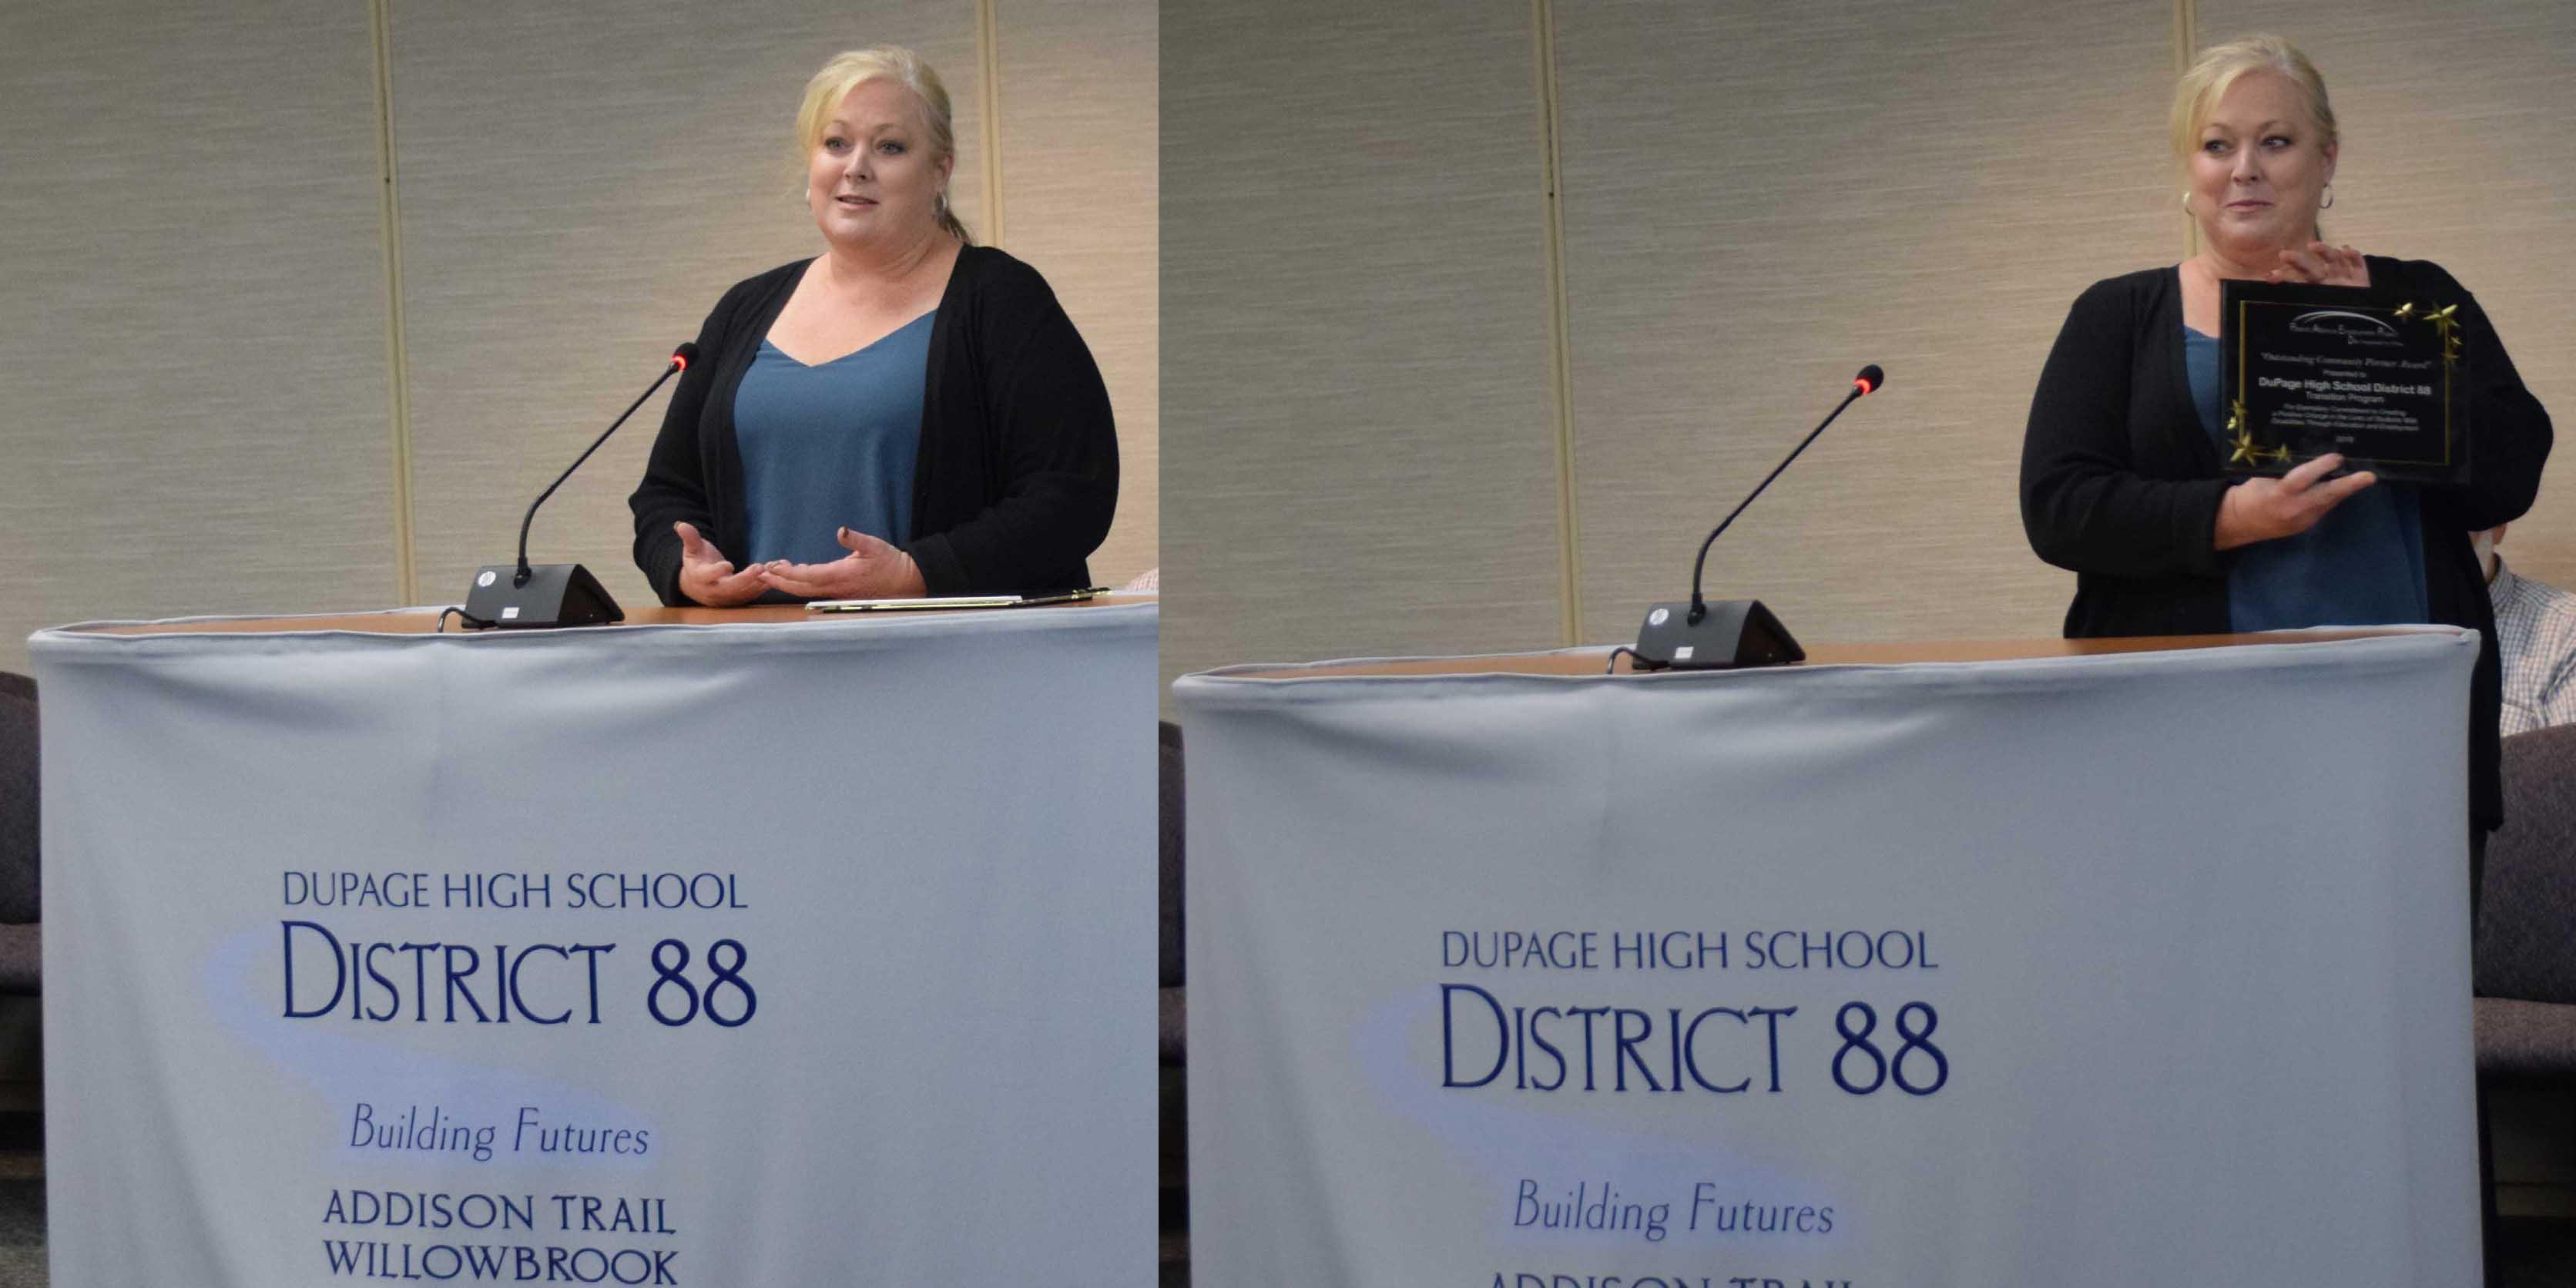 District 88 Board of Education recognizes the district's Transition Program for receiving award